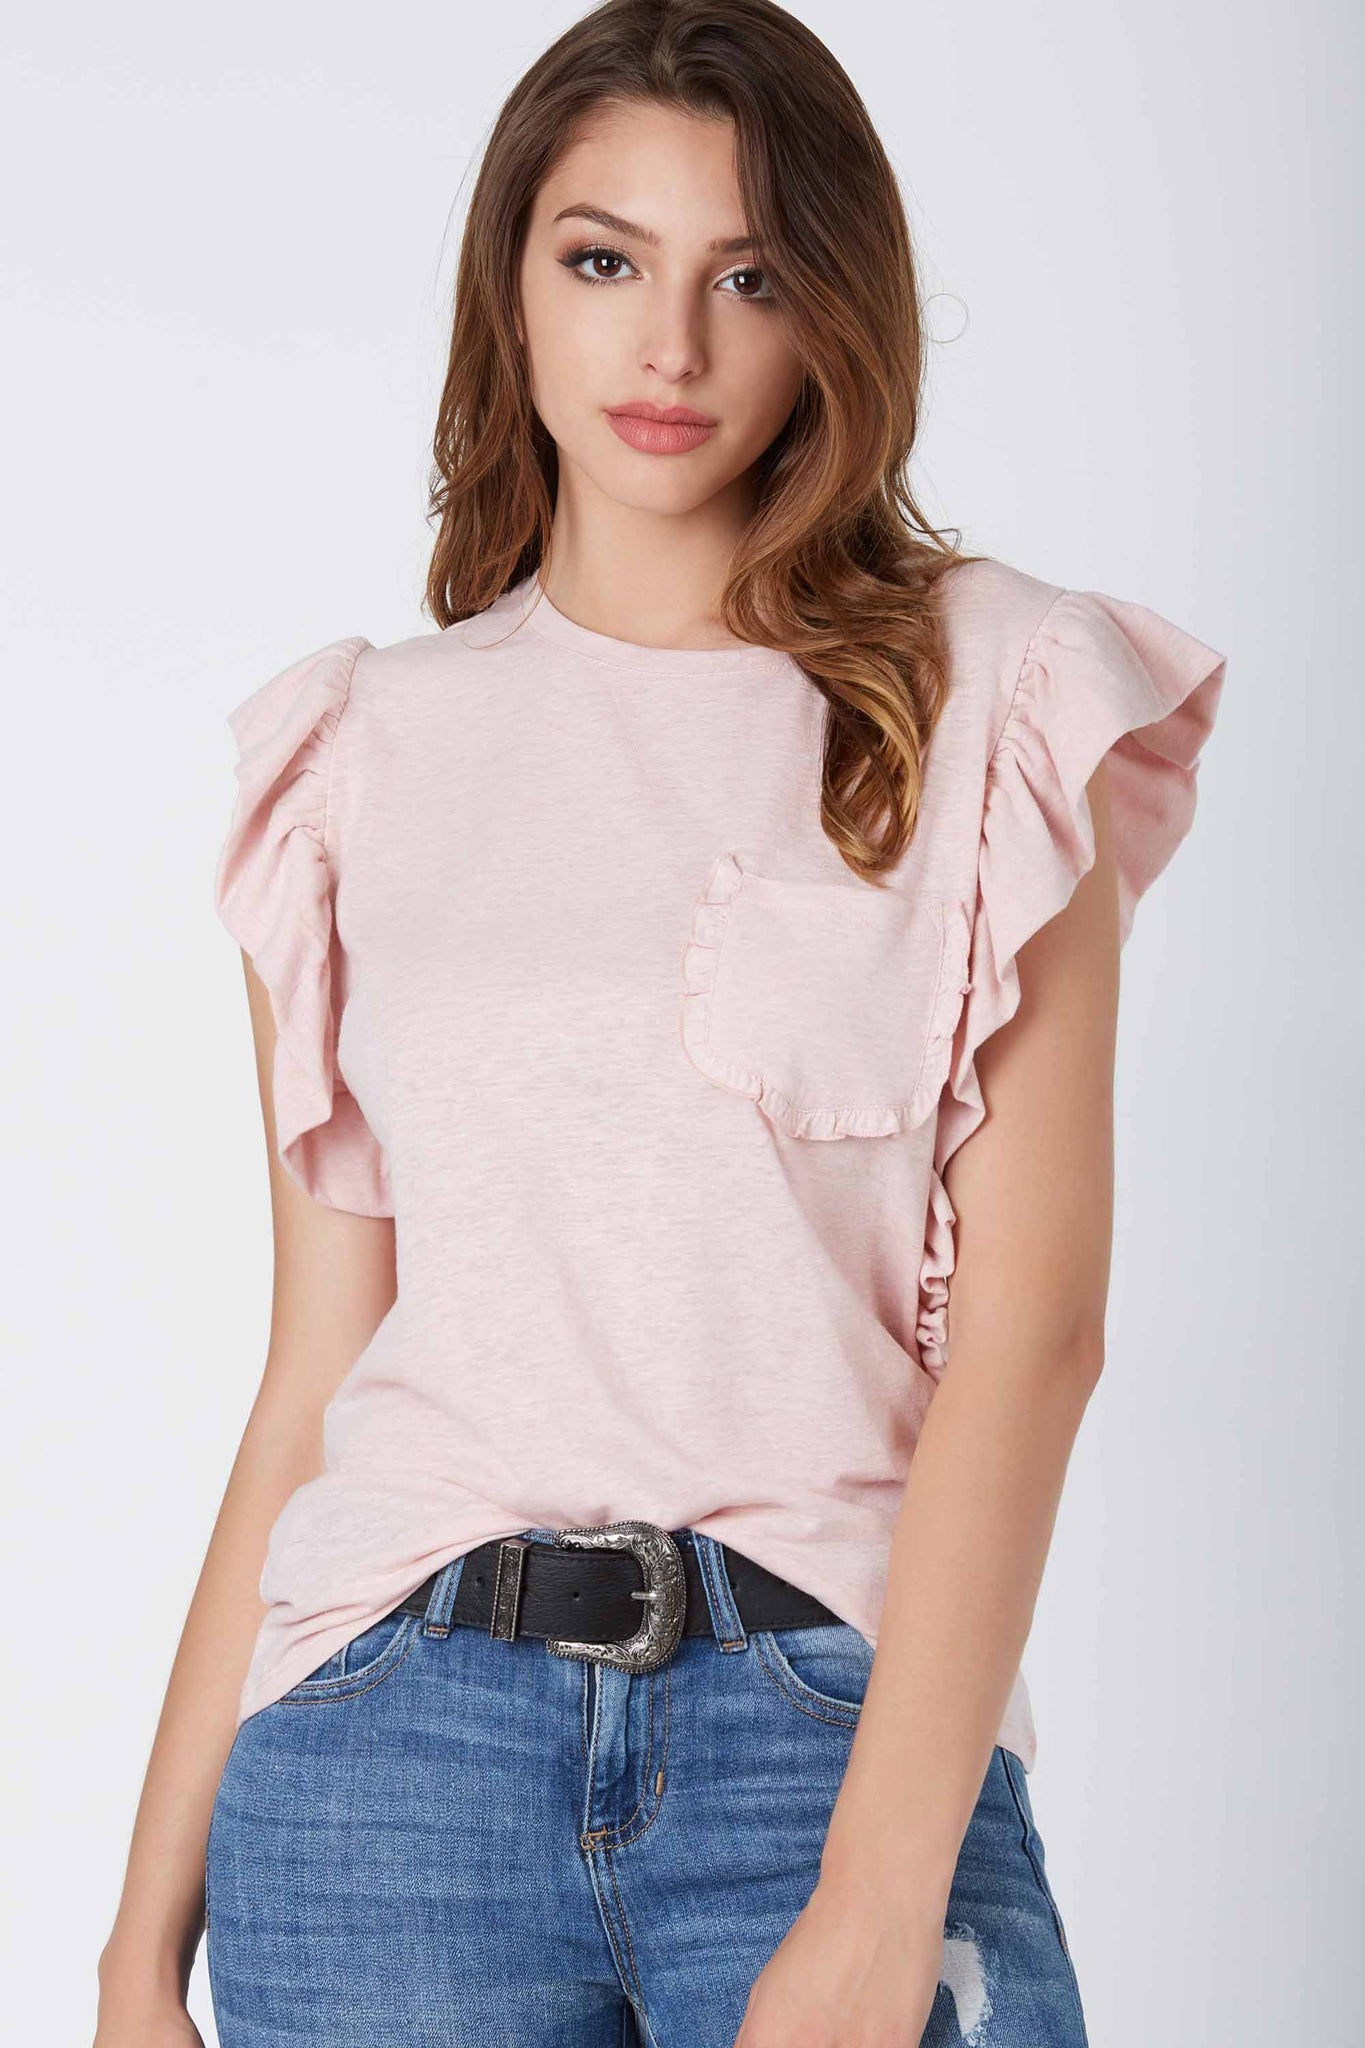 Crew neck cap sleeve top with flirty ruffle detailing and front pocket design. Relaxed fit with straight hem finish.